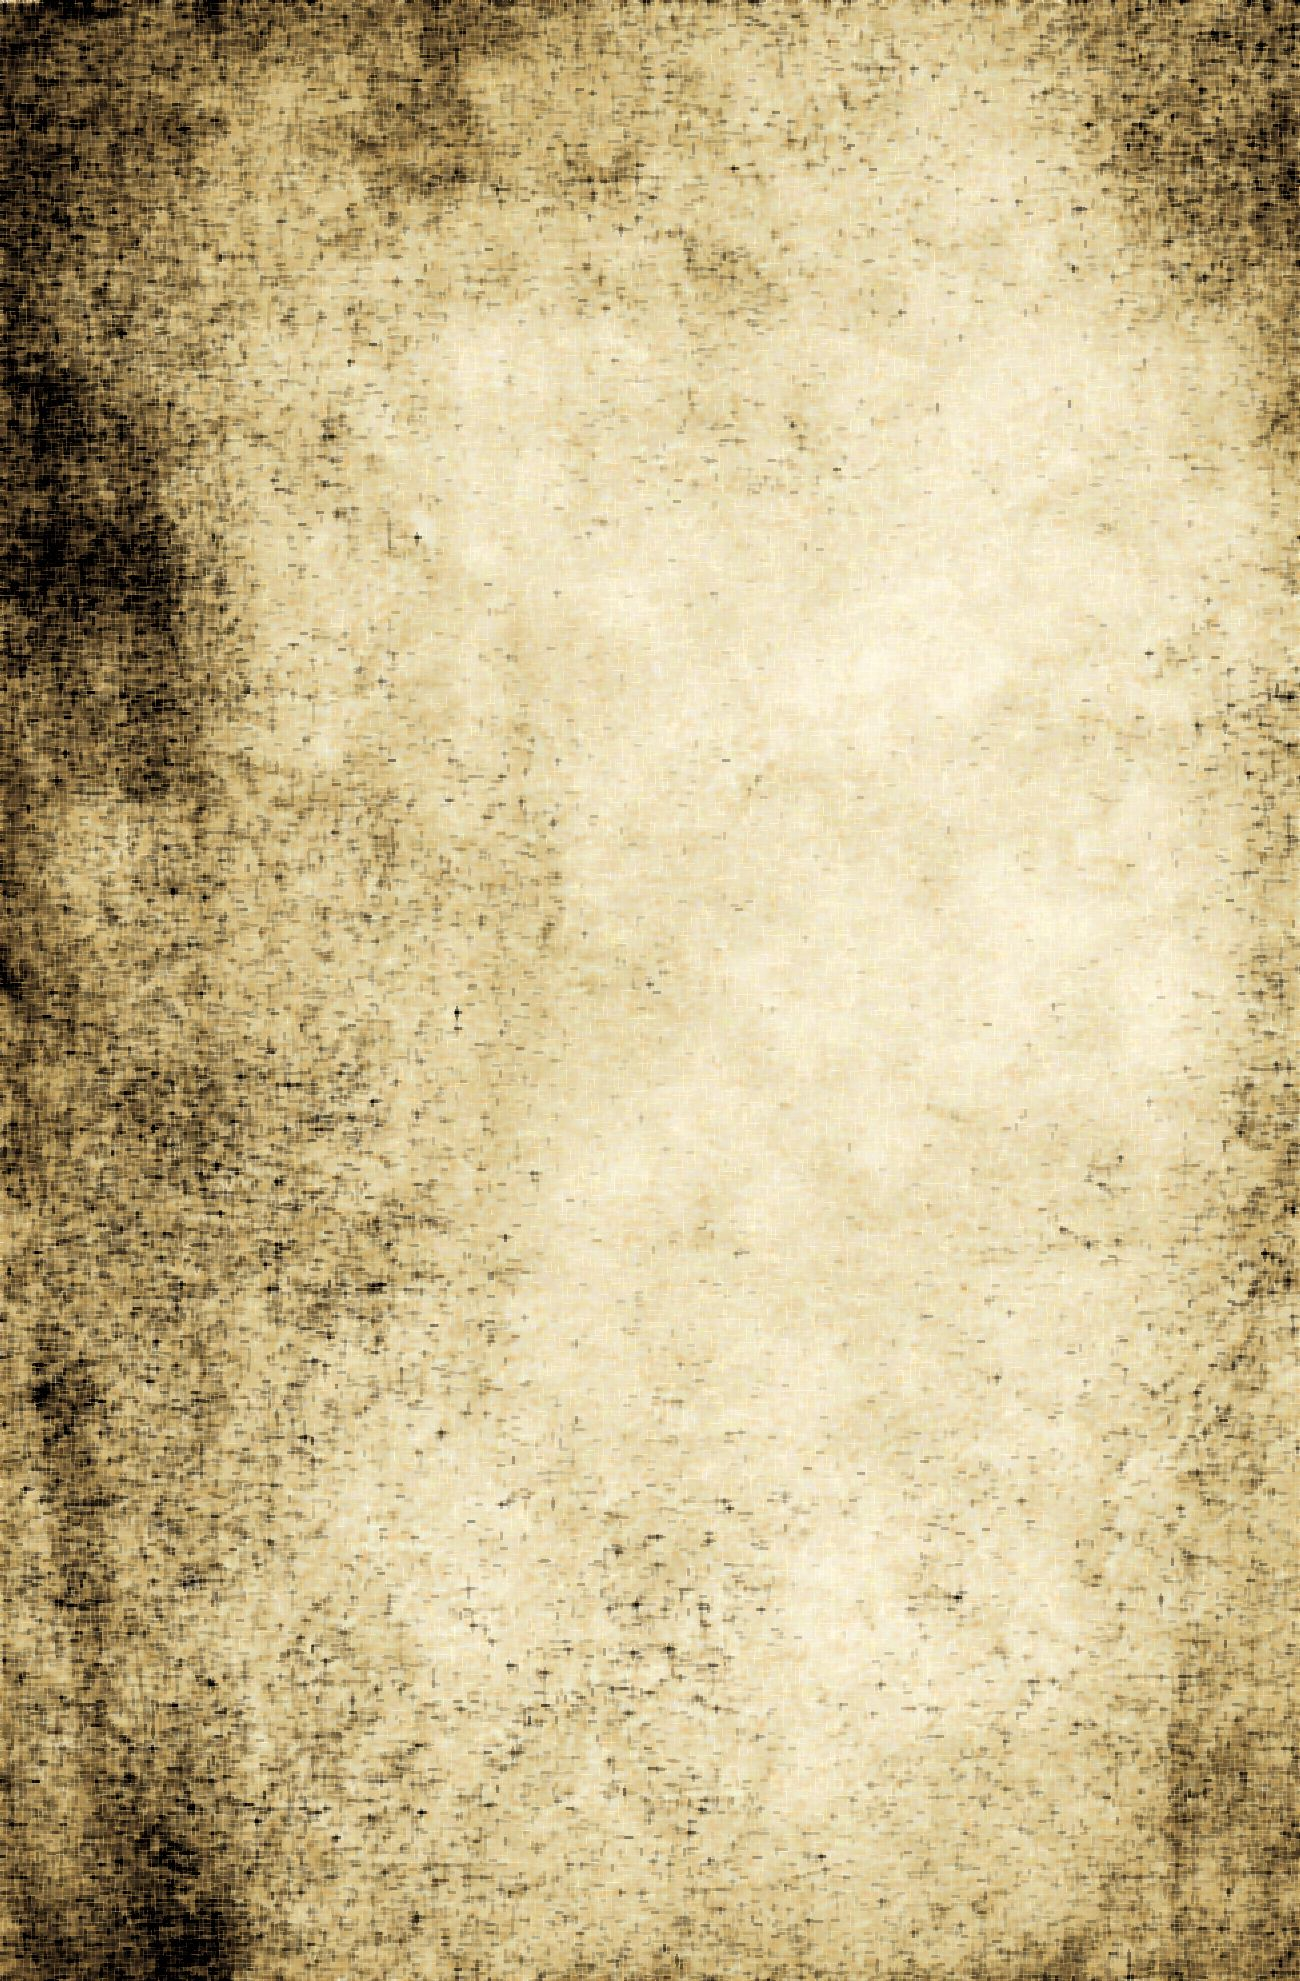 Ink texture background photo